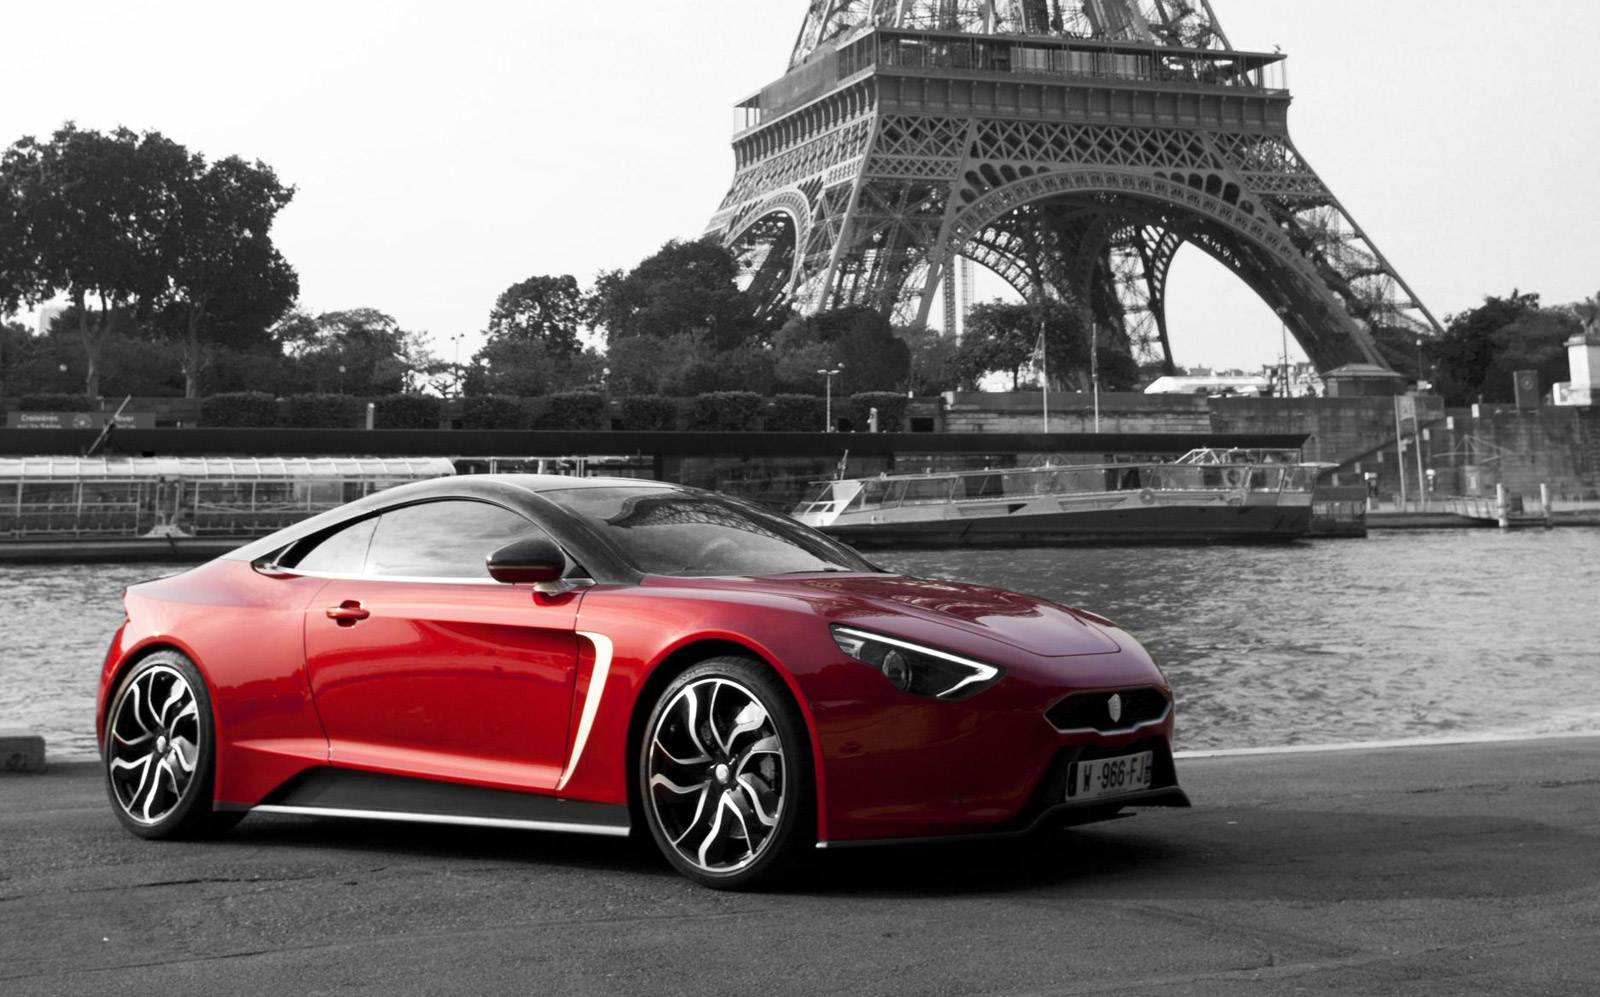 Exagon Furtive Egt Electric Sports Car Revealed In